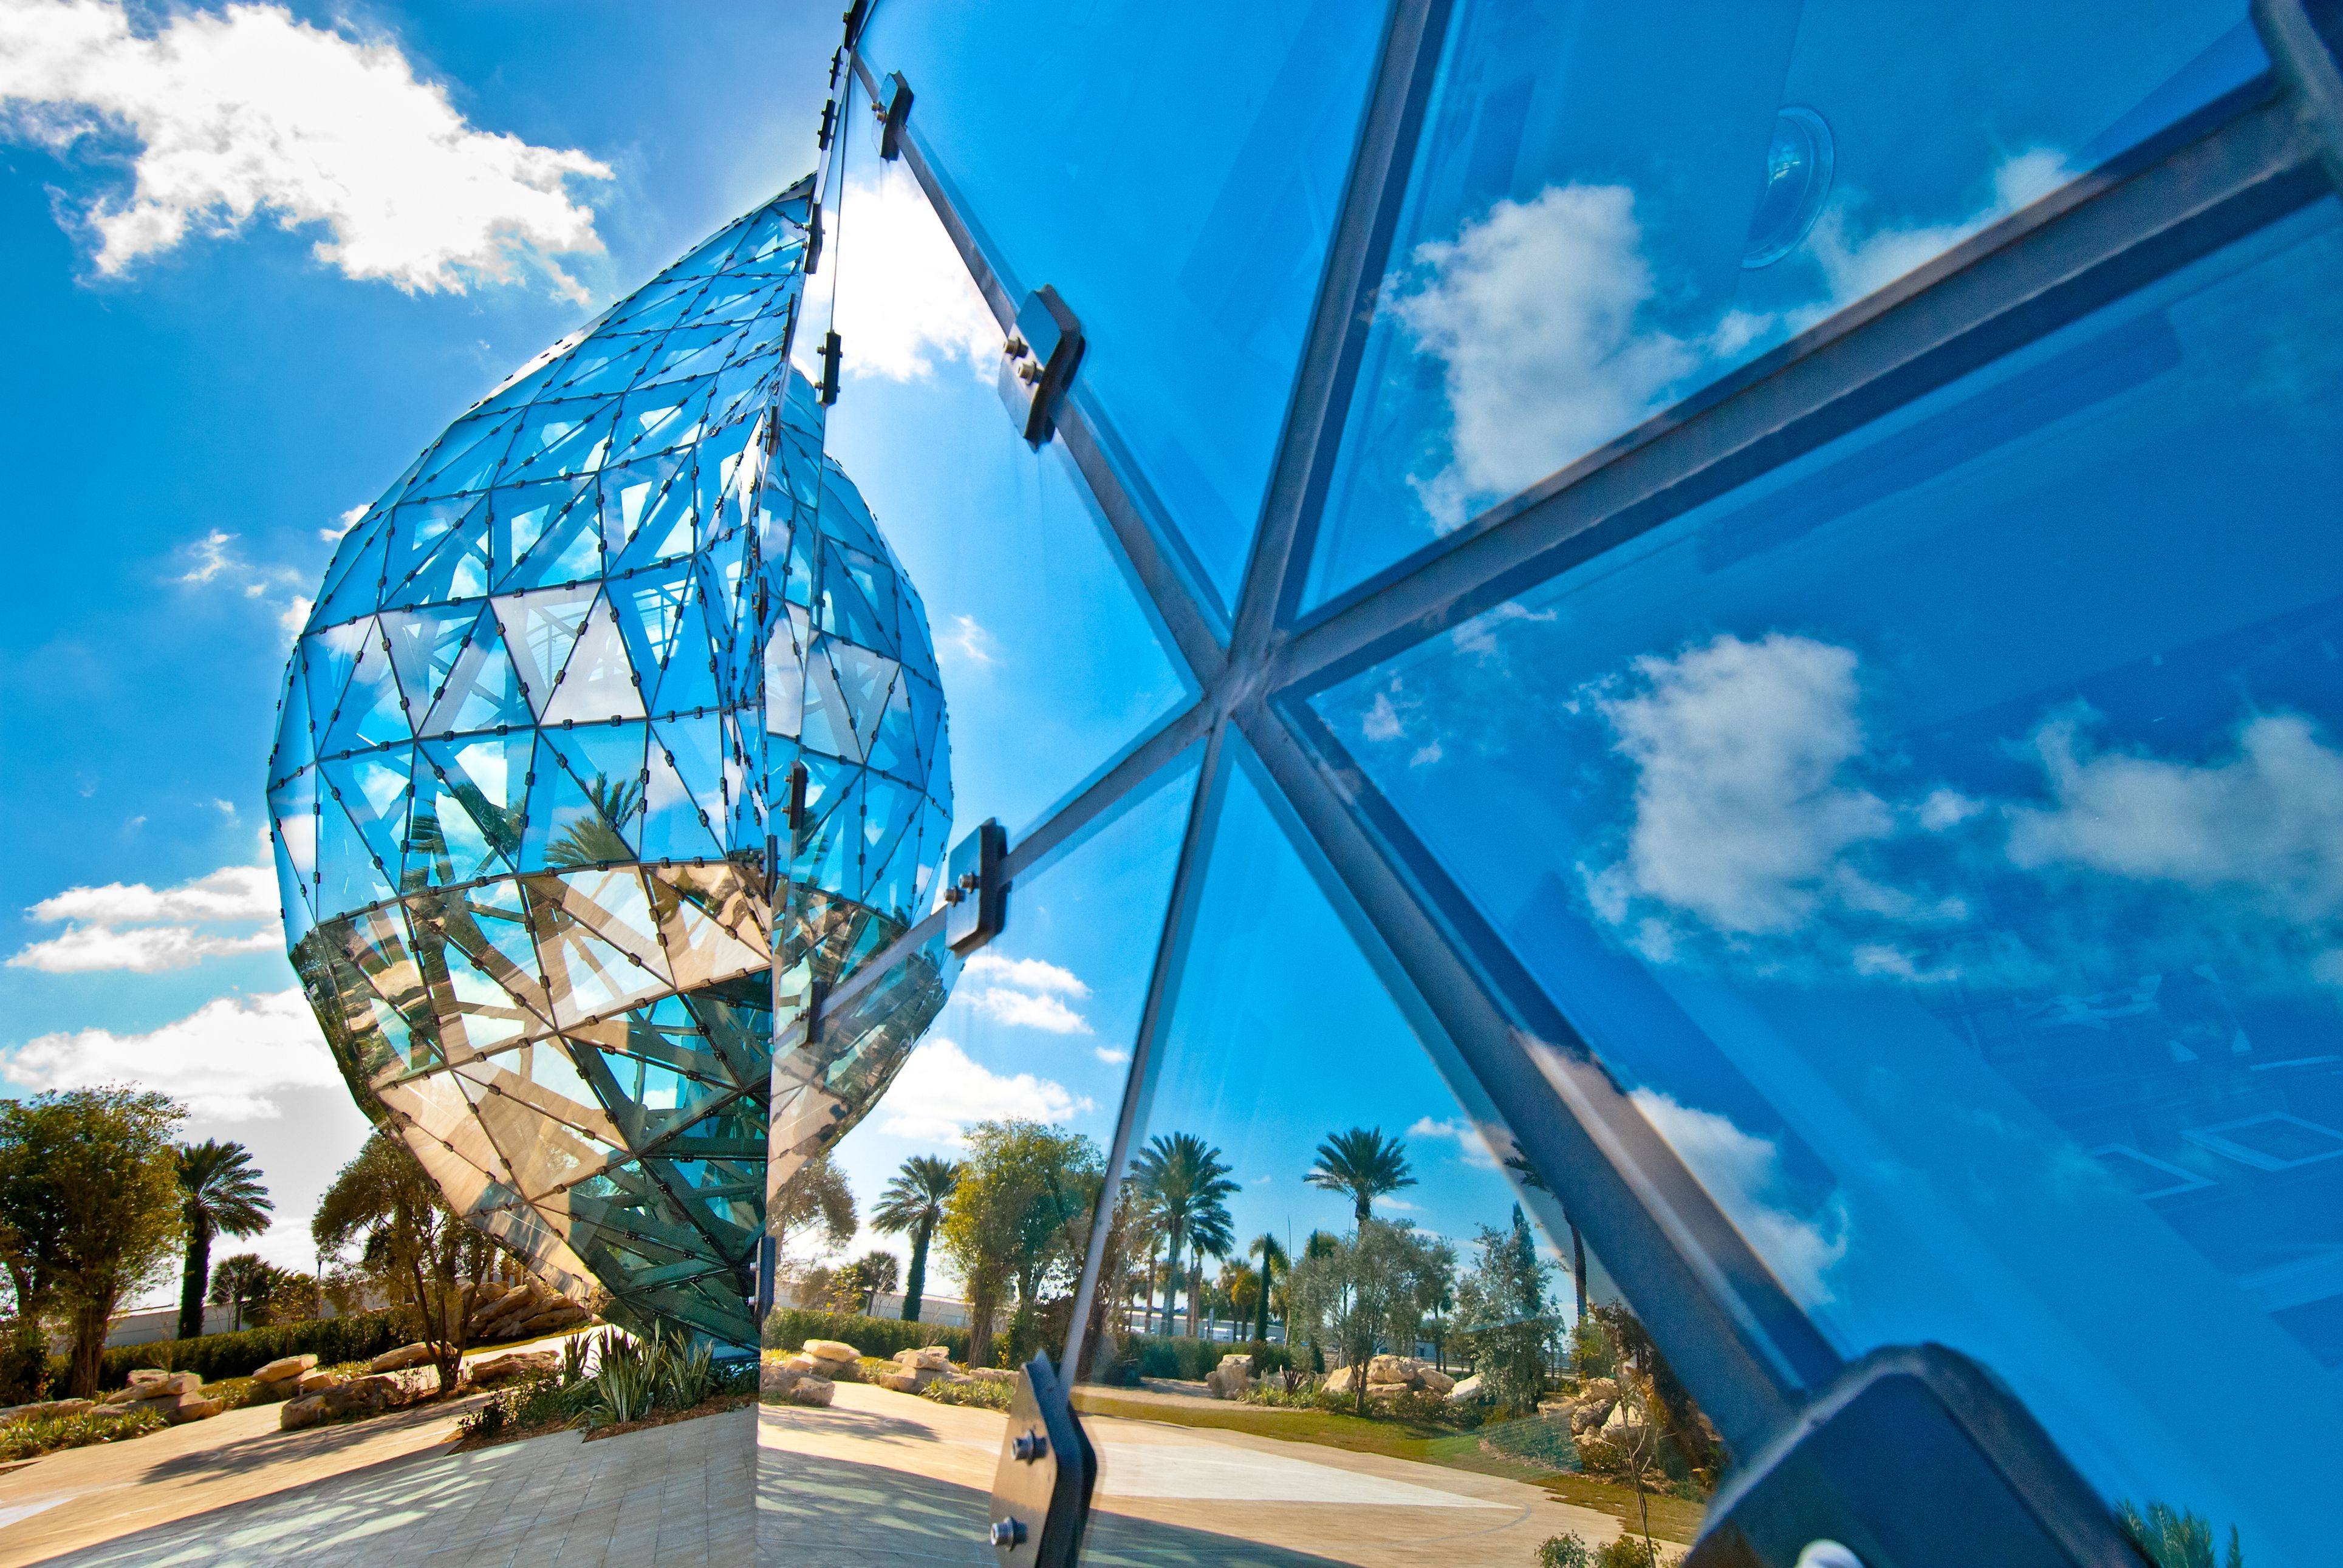 The Best Tampa Bay Art Museums